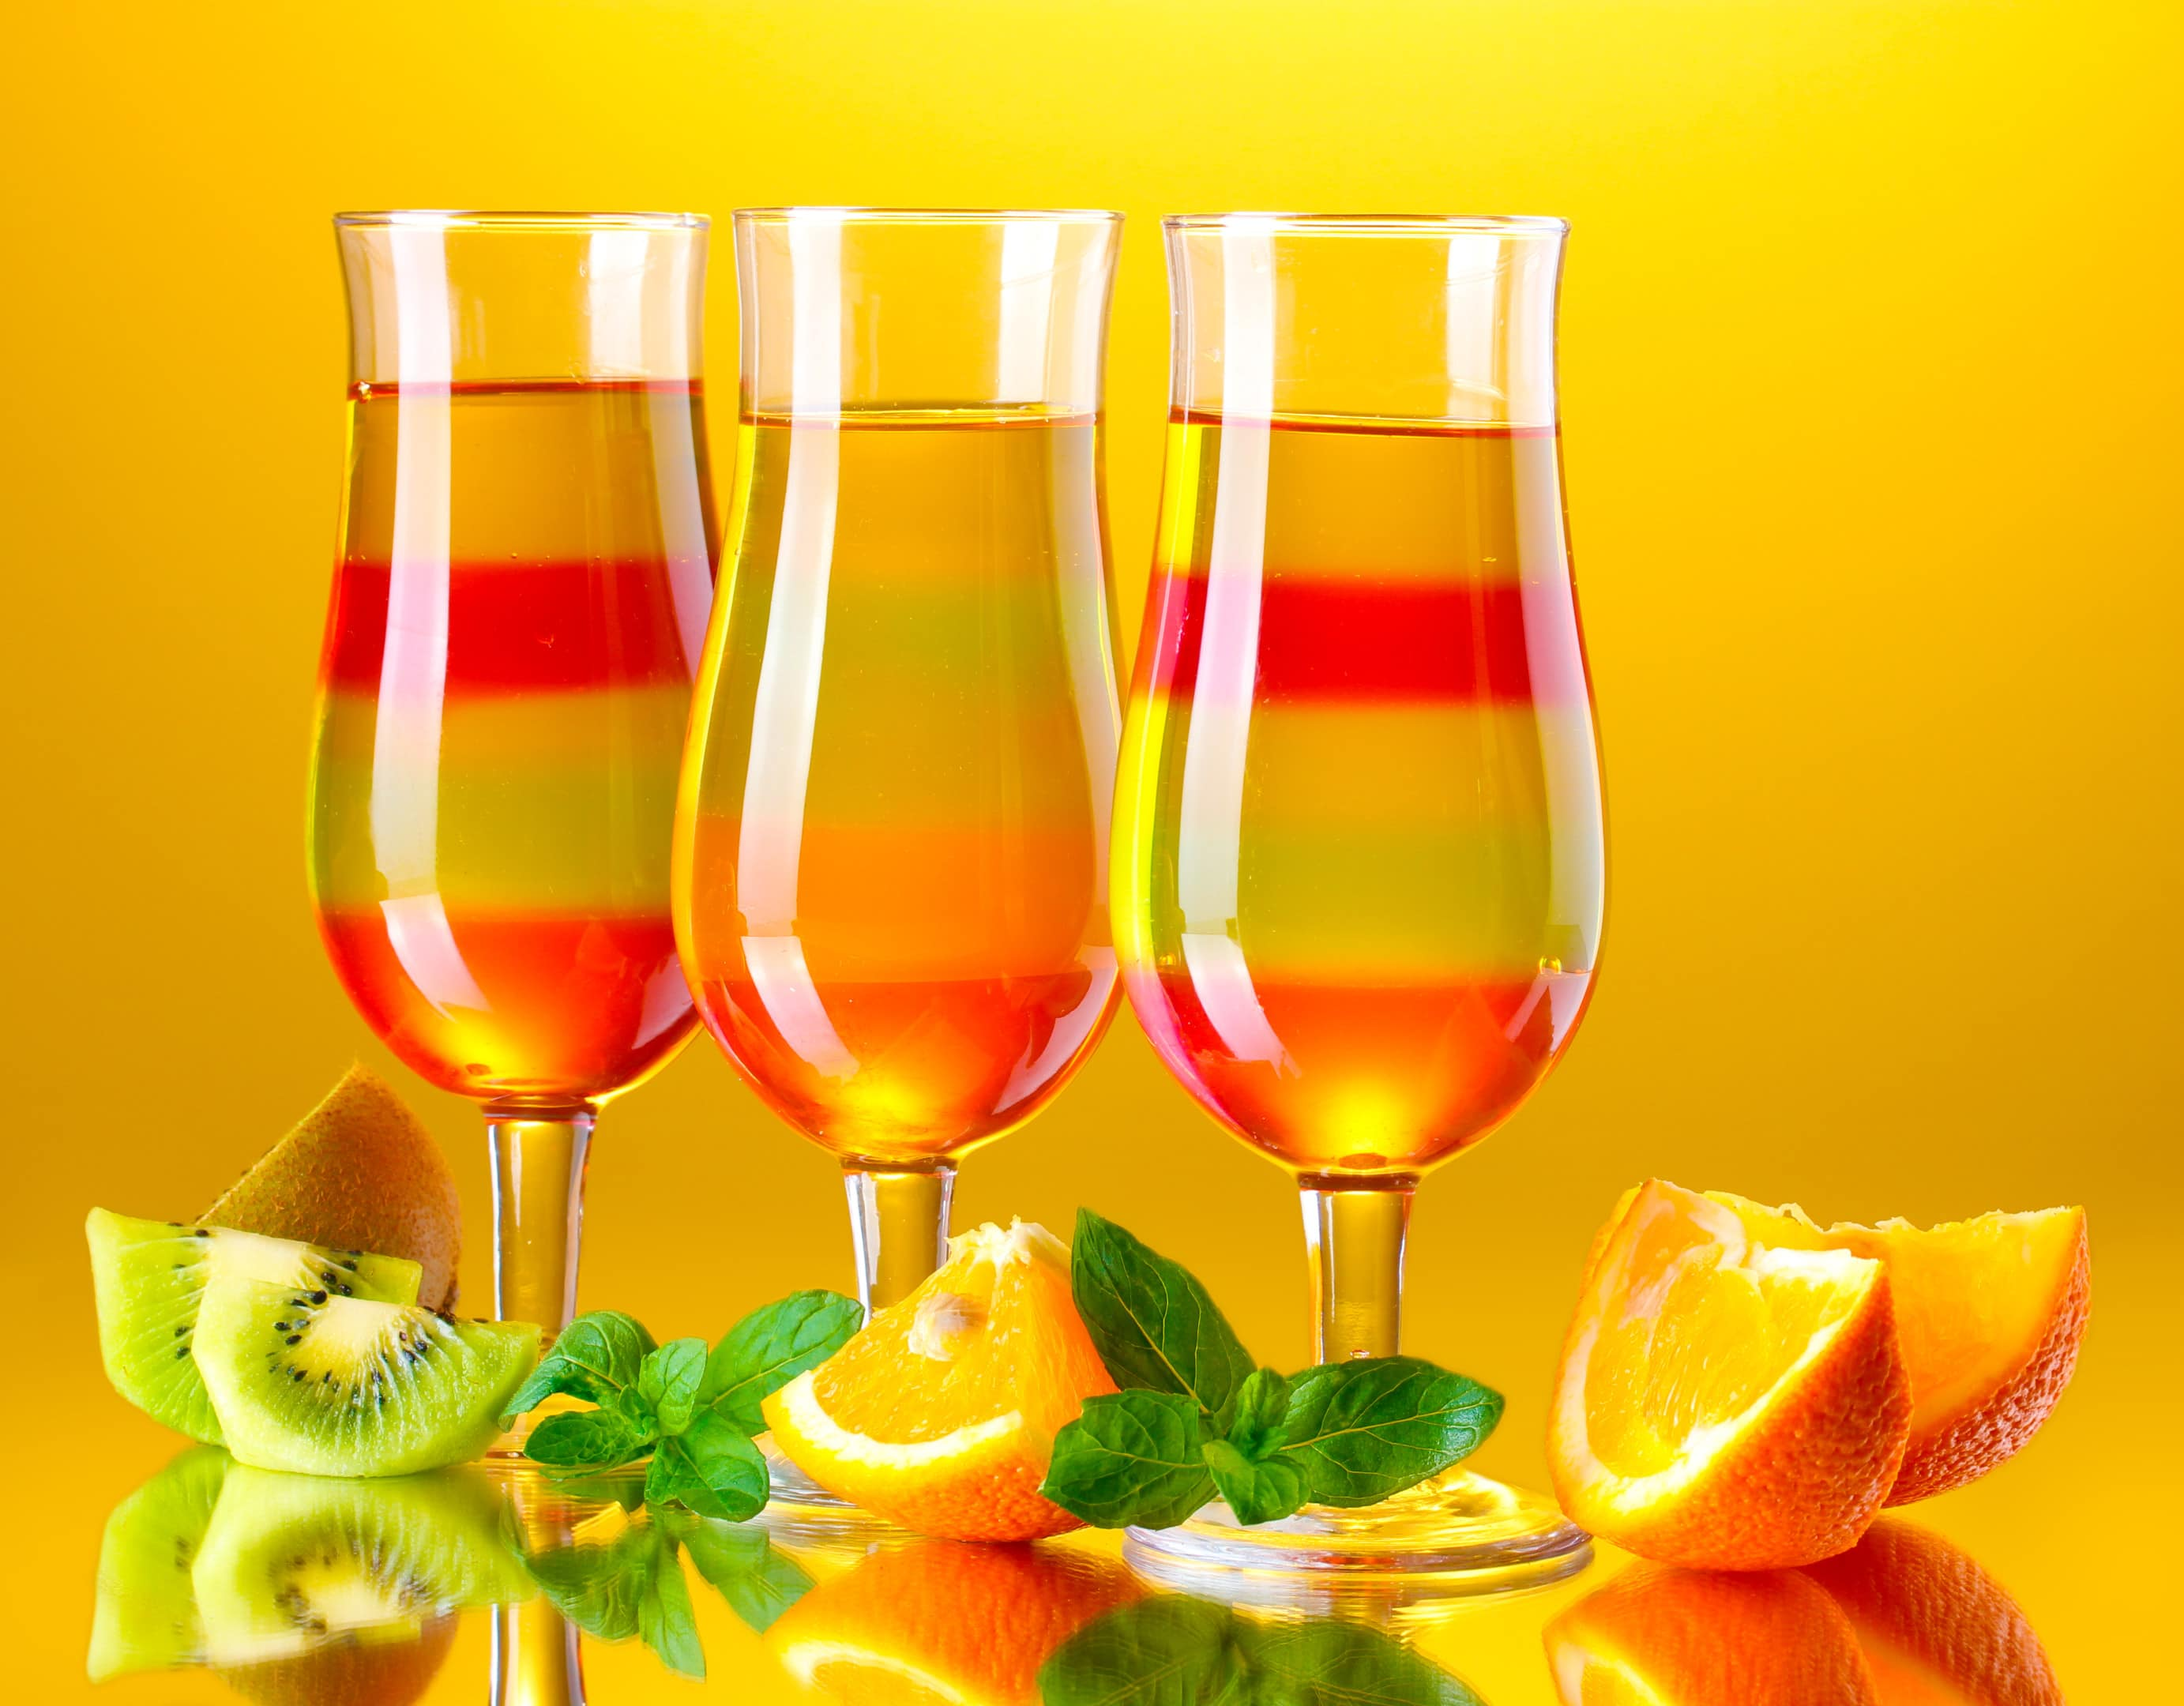 Fruit jelly gelatin in tall glasses with fresh fruits on yellow background